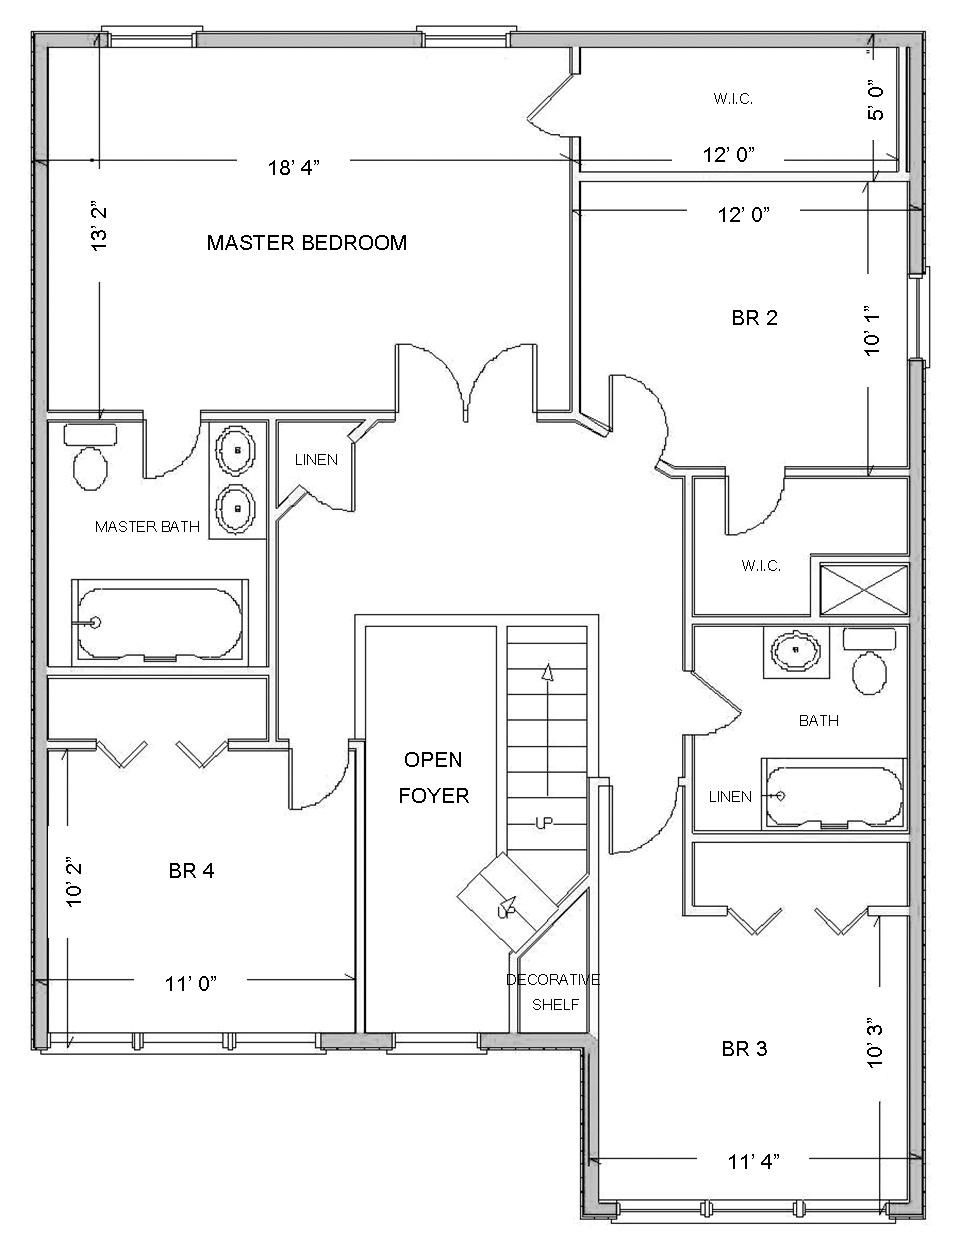 Software to Draw House Plans Free Awesome Digital Smart Draw Floor Plan with Smartdraw software with